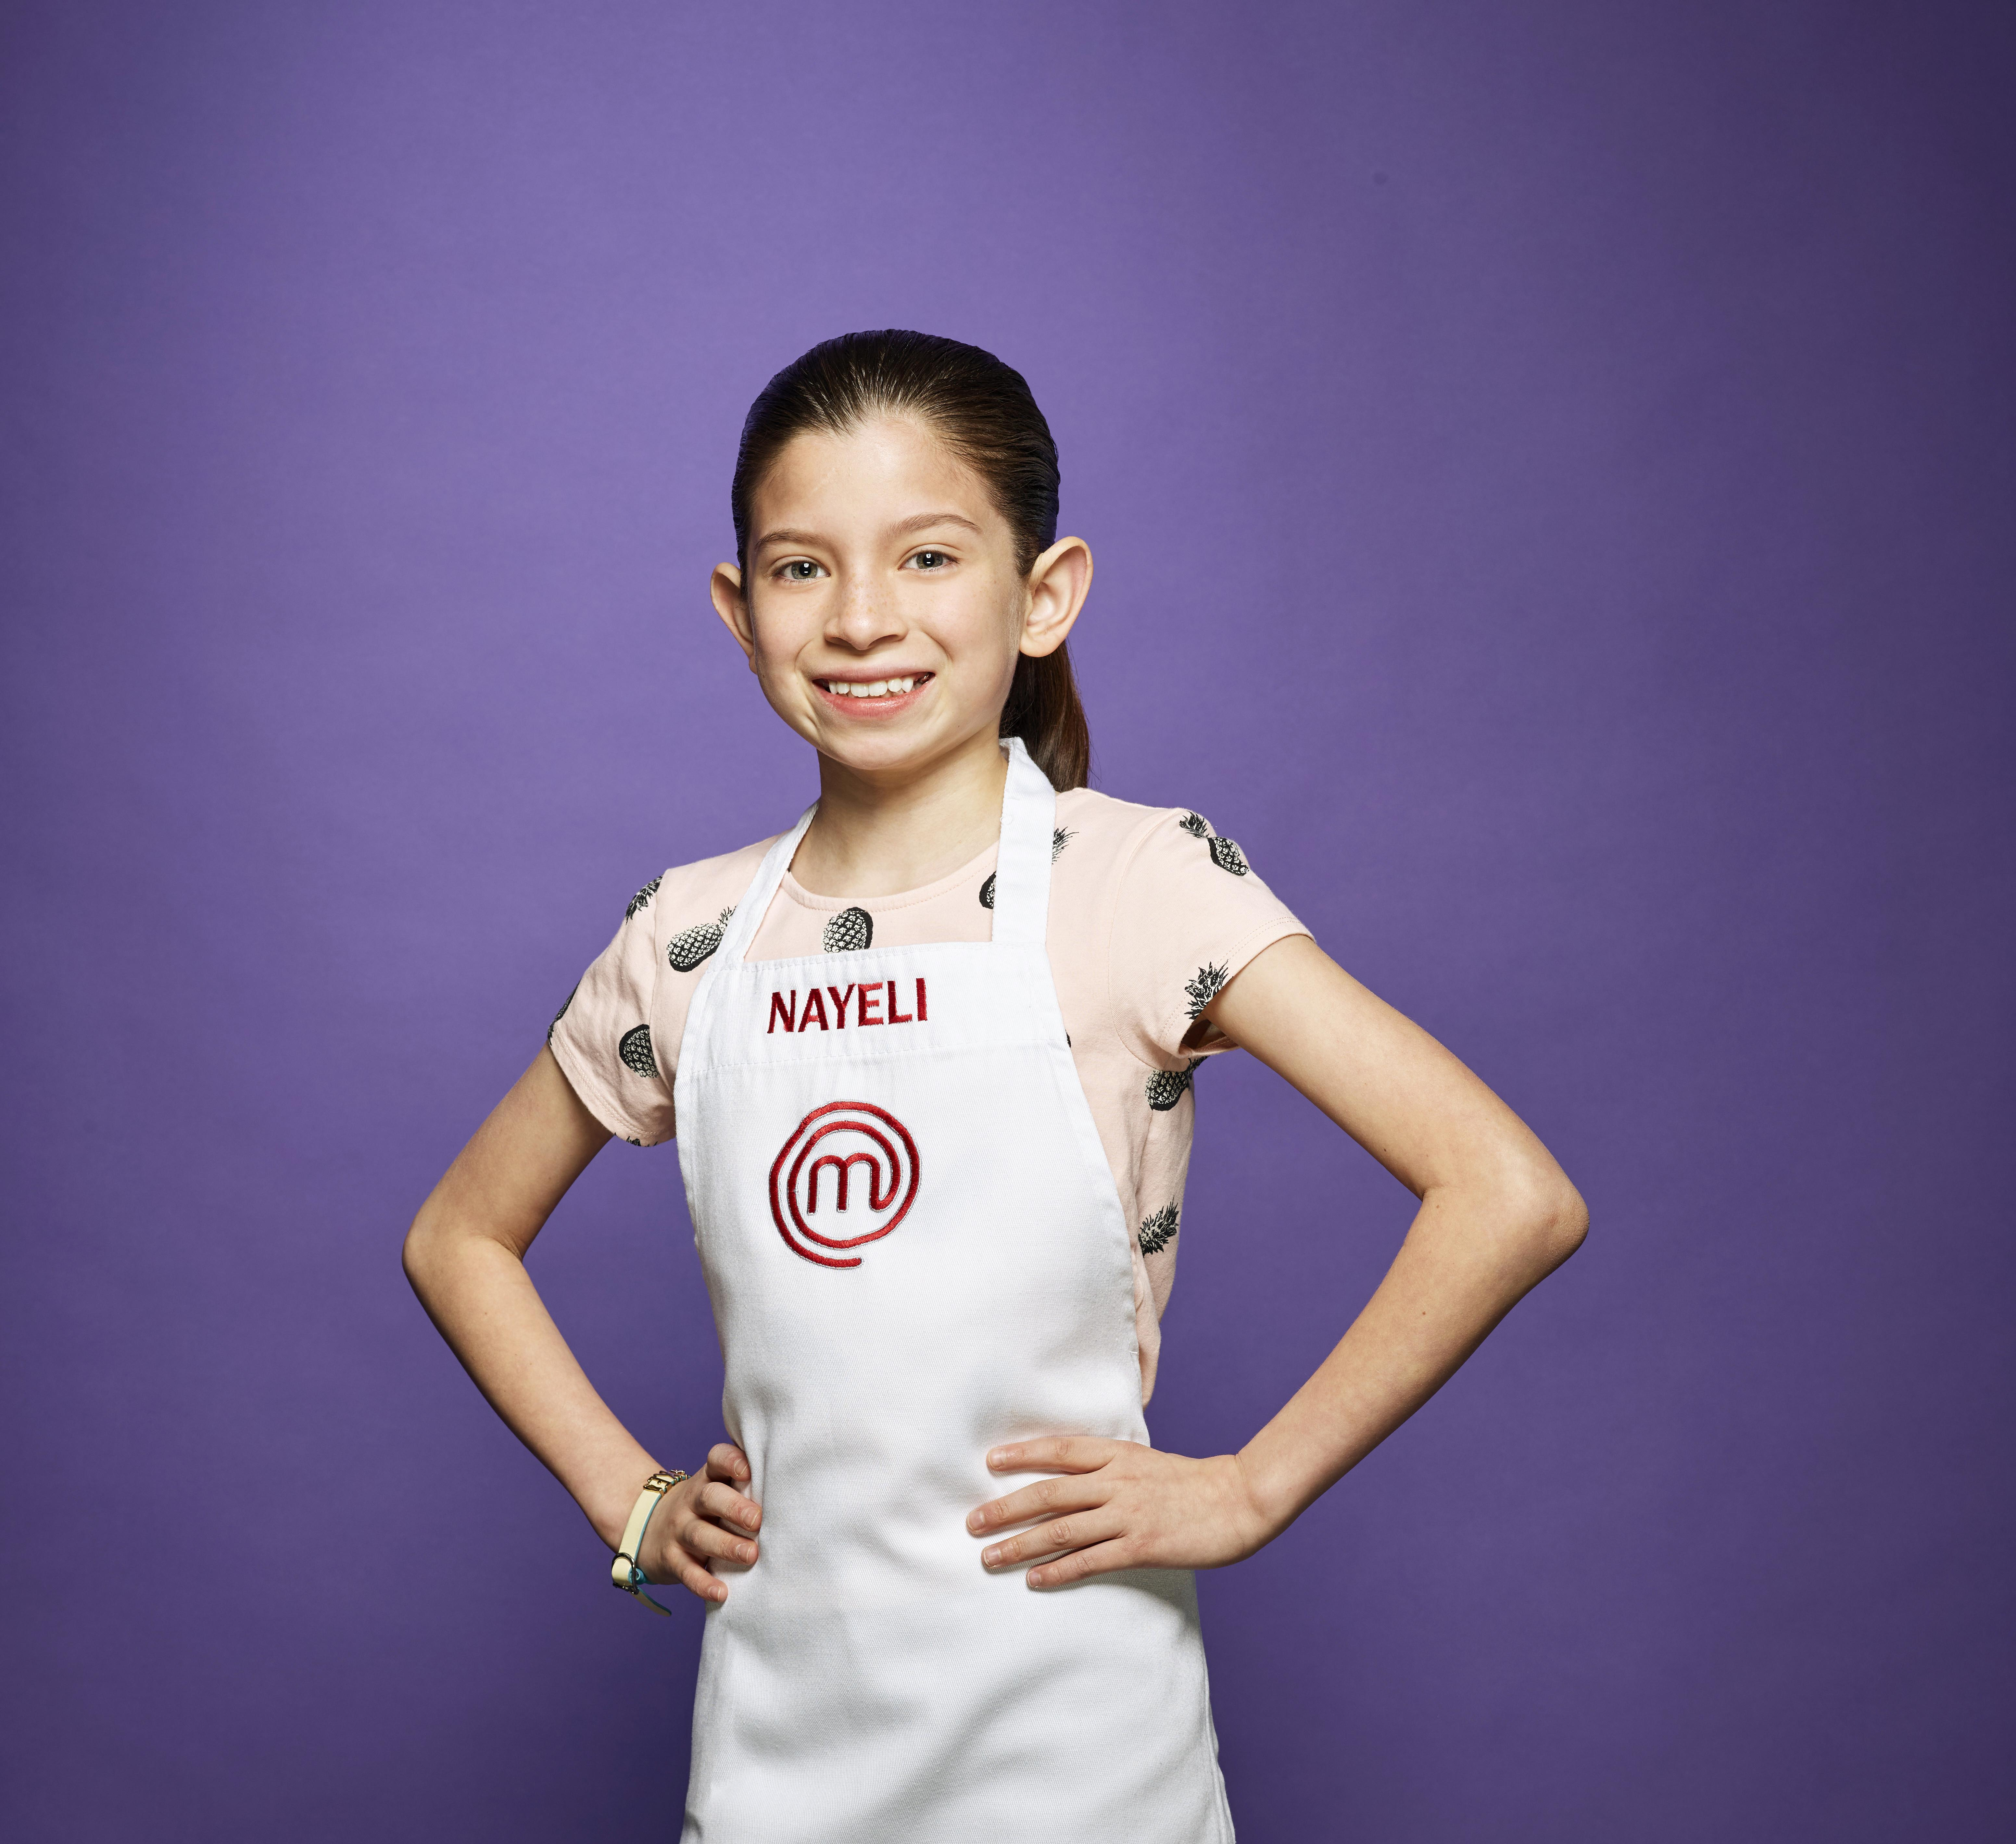 masterchef - photo #48